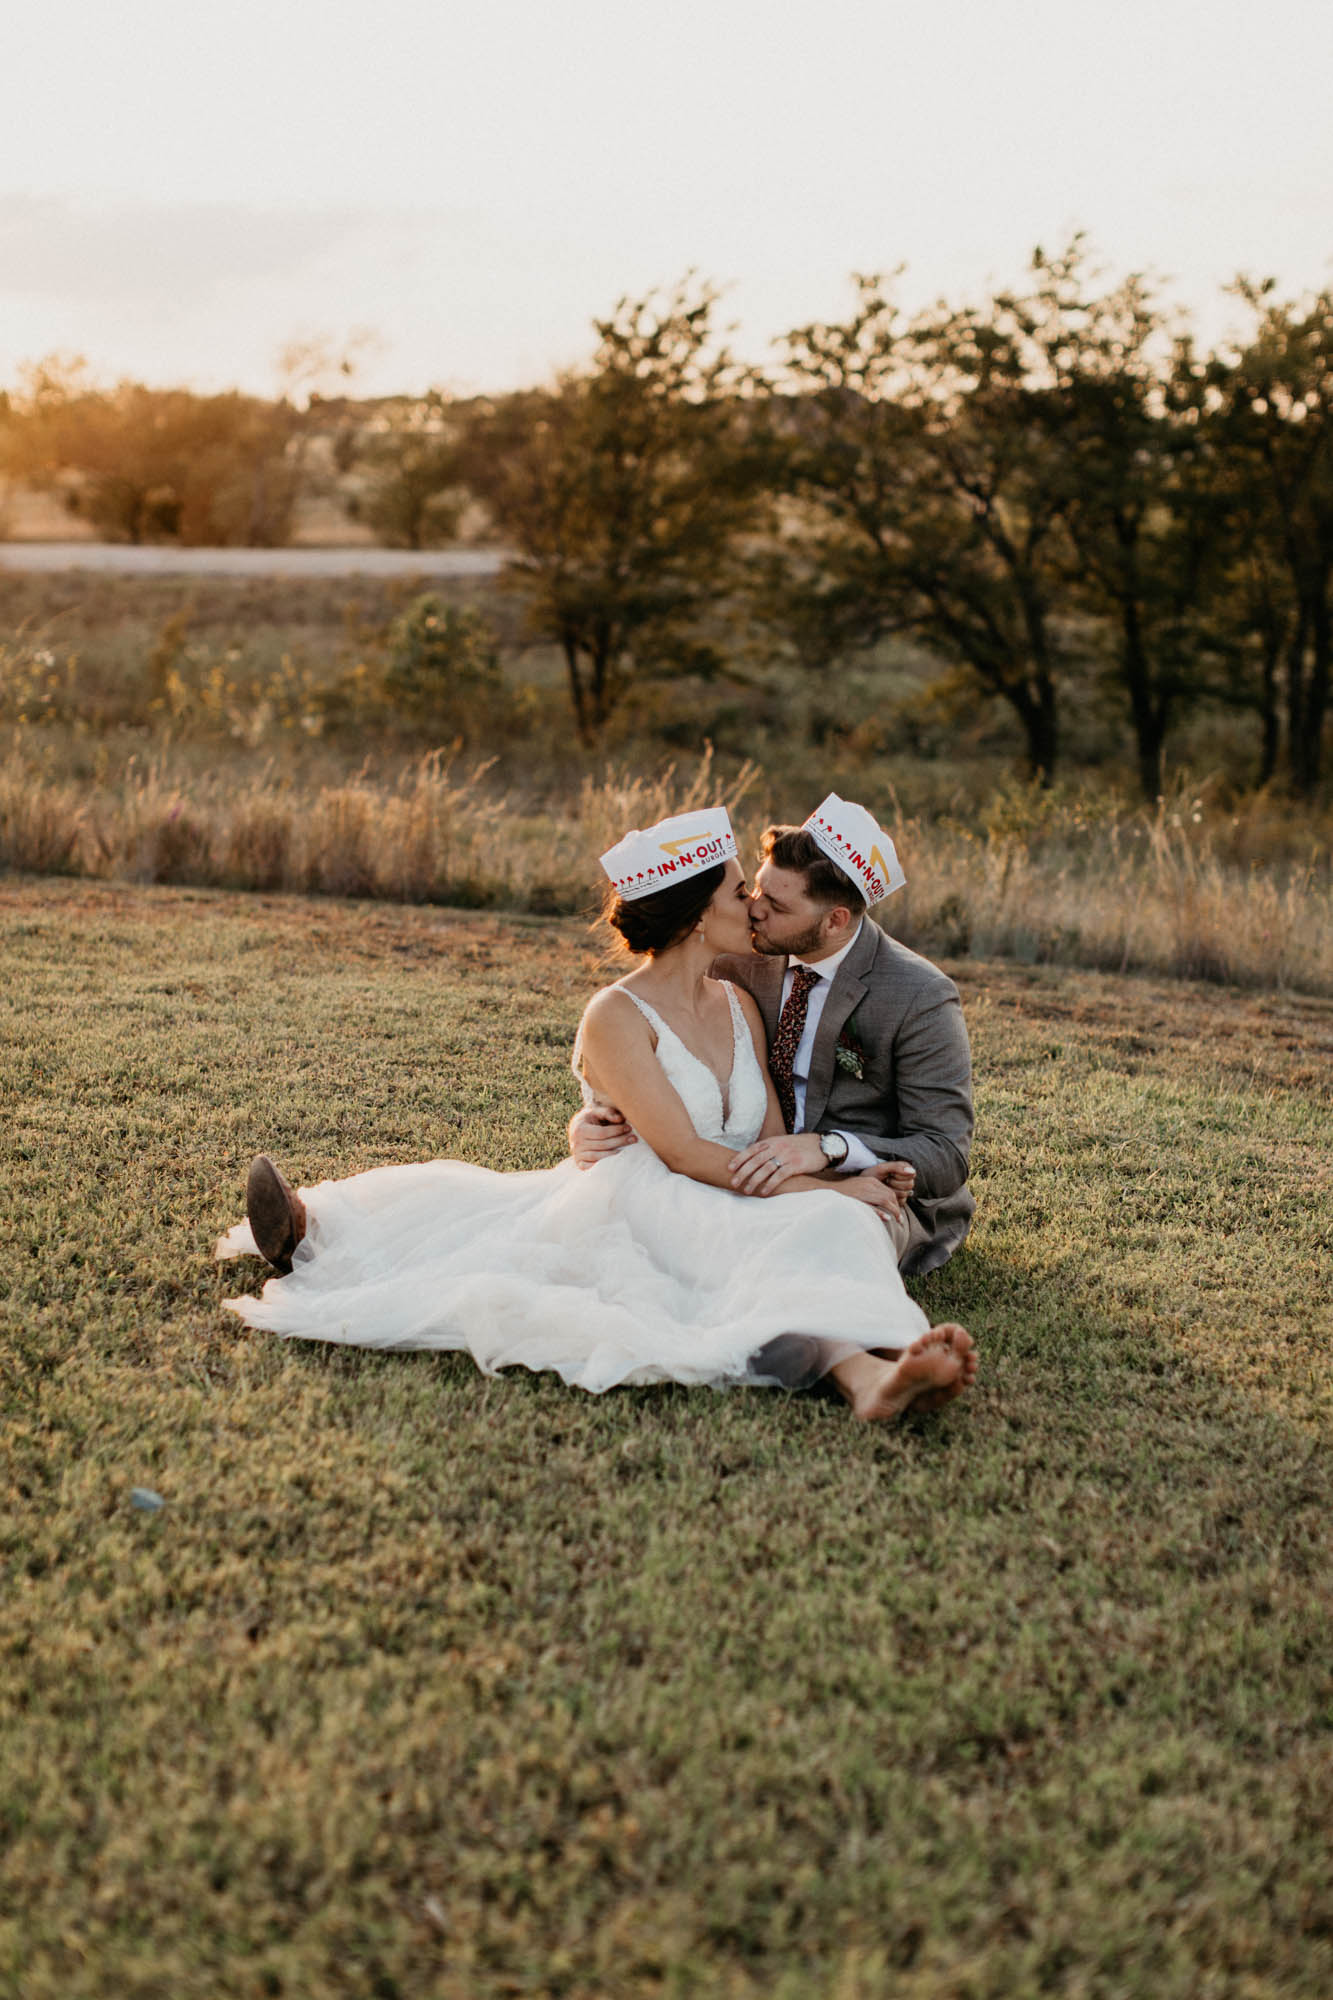 Bride and groom take photo wearing in-n-out hats at their north texas wedding